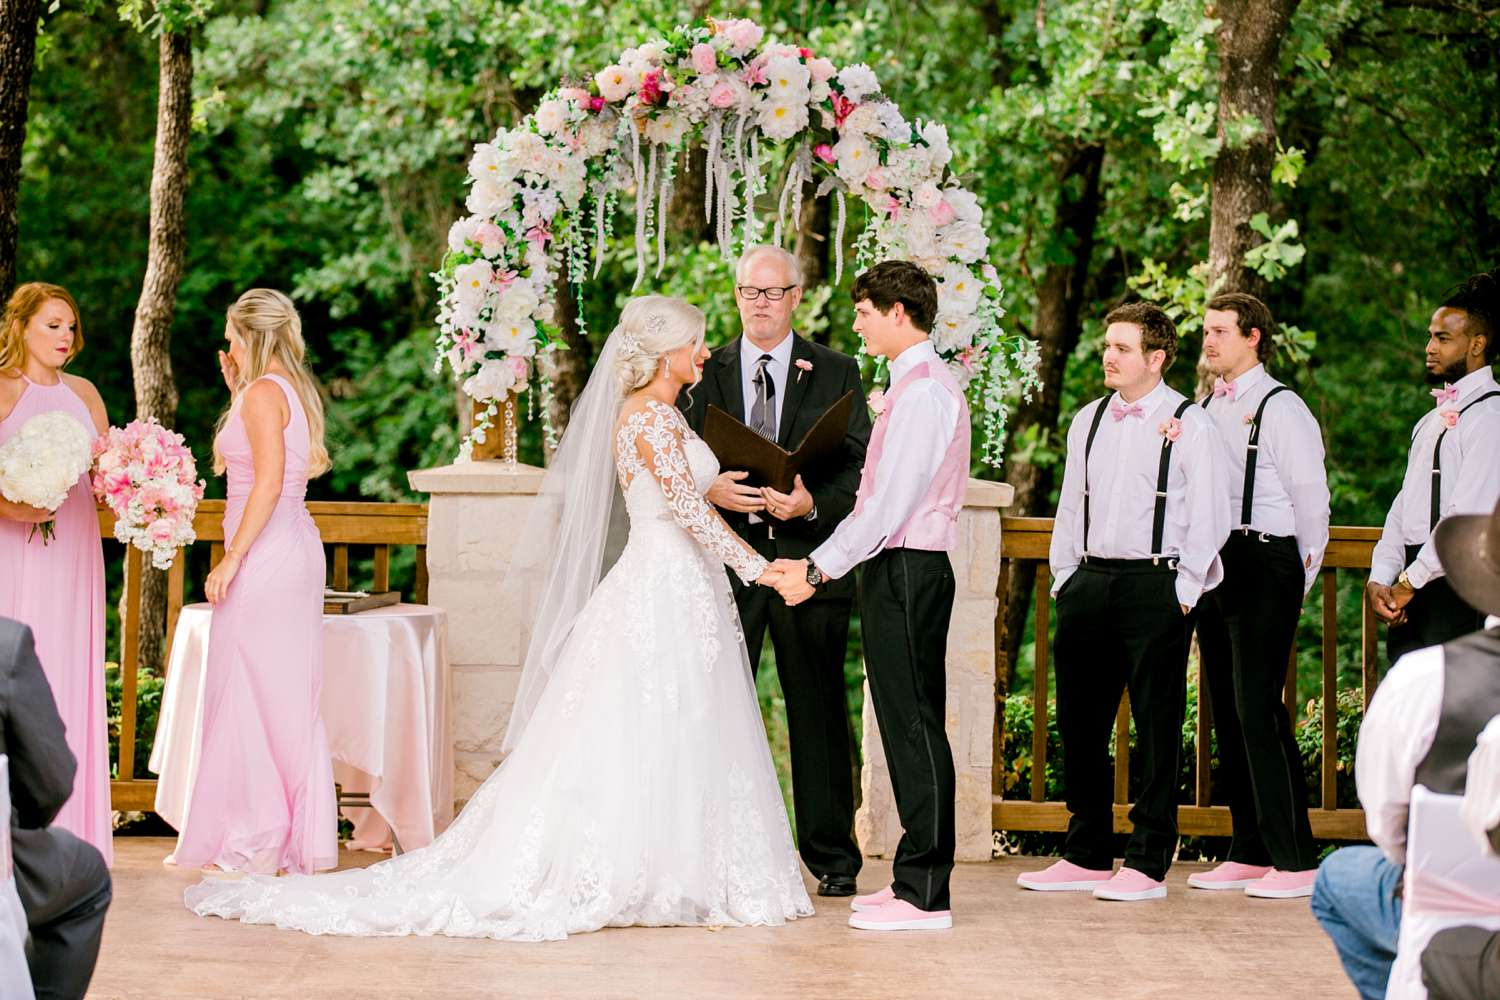 JESSICA+LYLE+NEEL+THE_SPRINGS_EVENTS_WEDDING_OKLAHOMA_ALLEEJ_PHOTOGRAPHER_0055.jpg